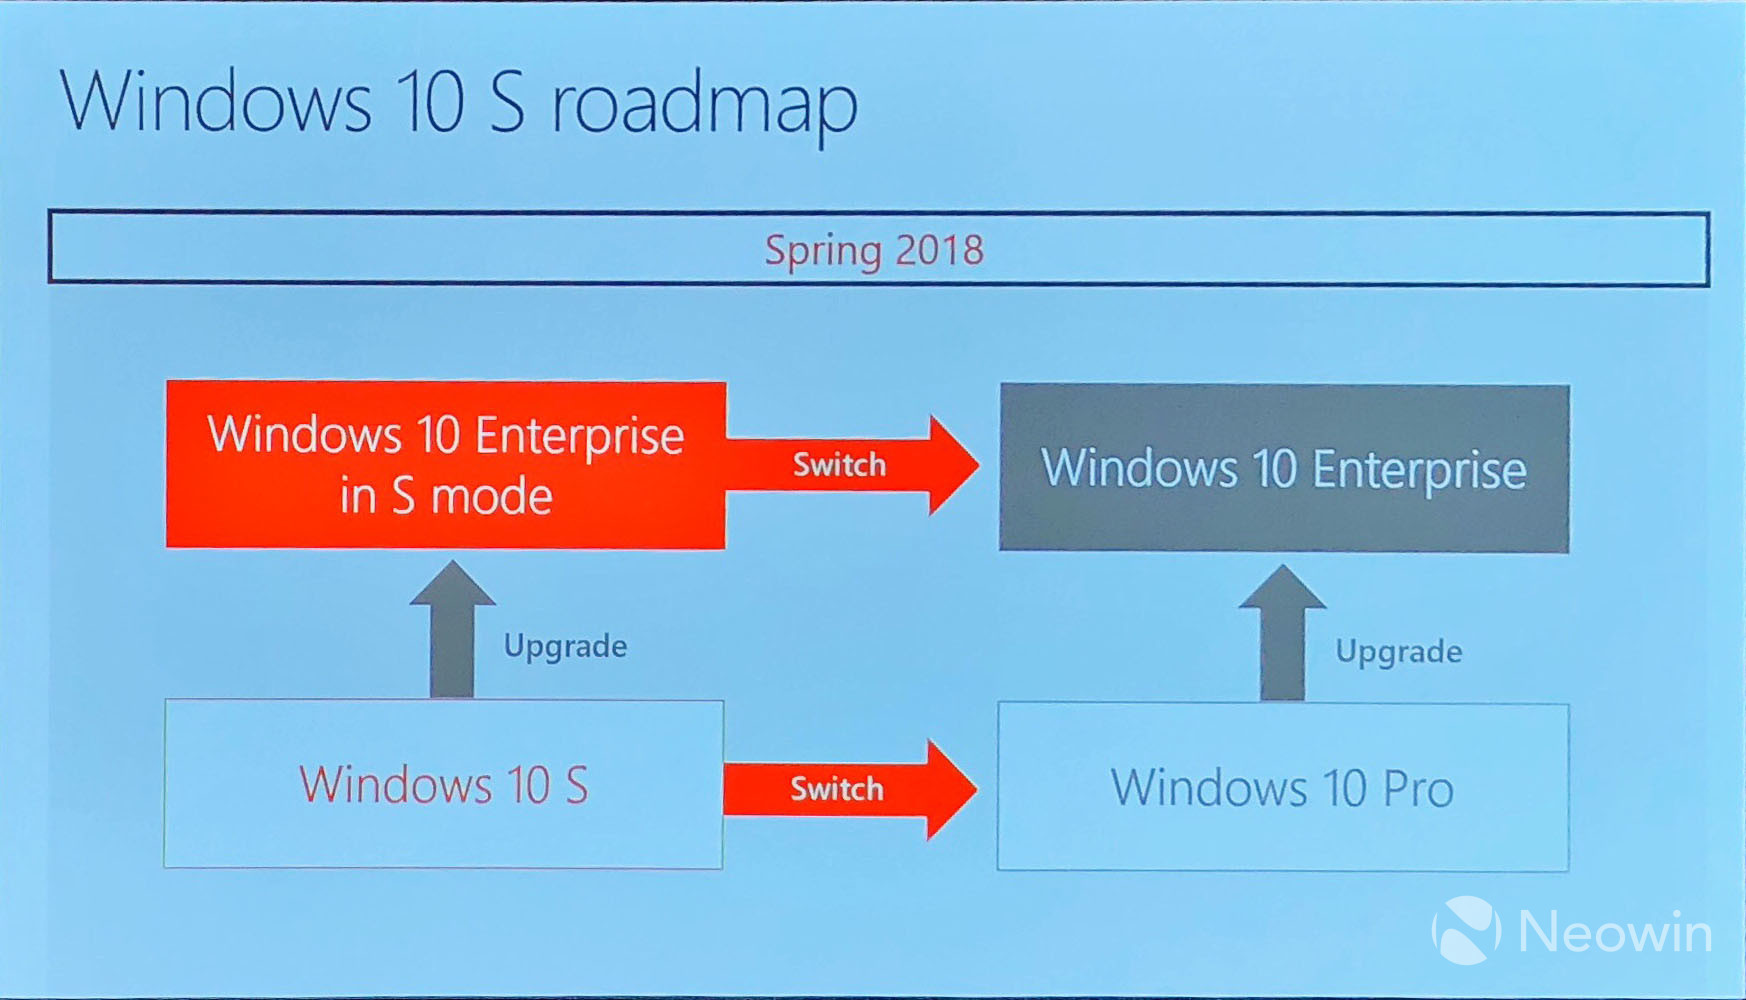 Microsoft is releasing a new version of Windows 10 S for the